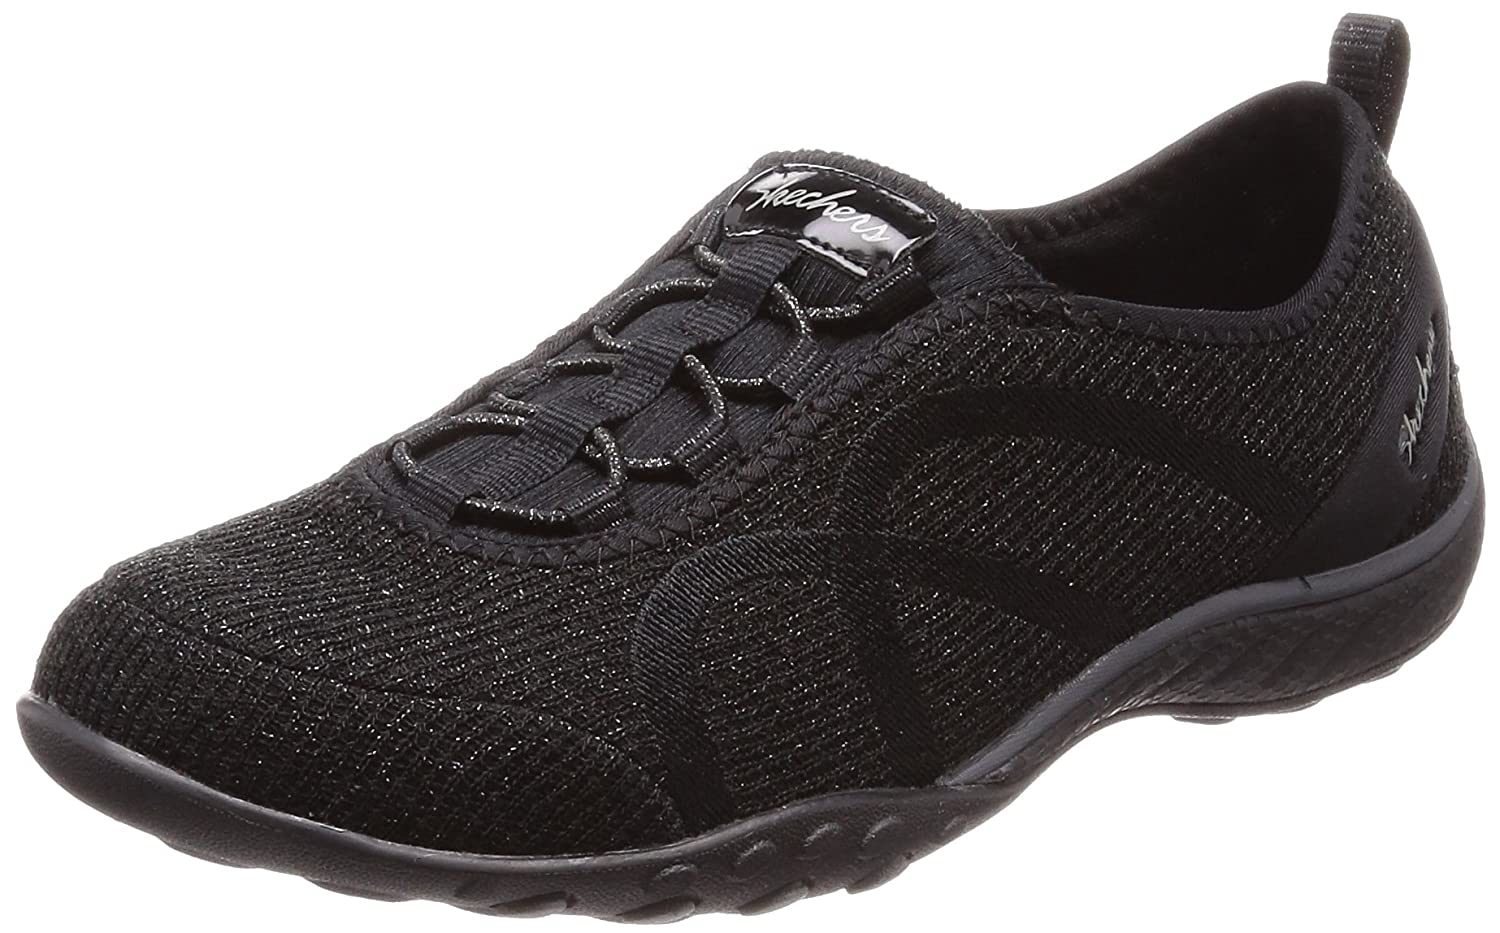 Skechers Relaxed Fit Breathe Easy Star search Womens Slip On Sneakers B078G9THN7 5 B(M) US|Black